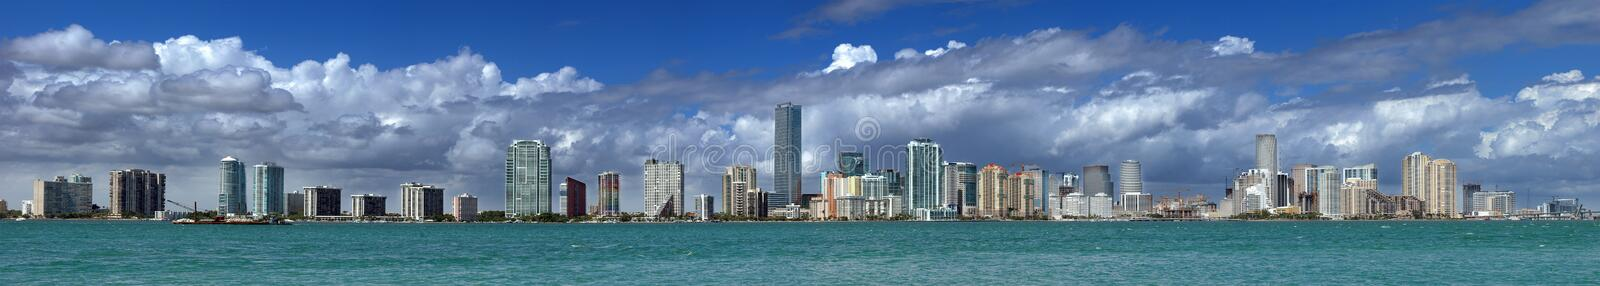 Skyline de Miami fotos de stock